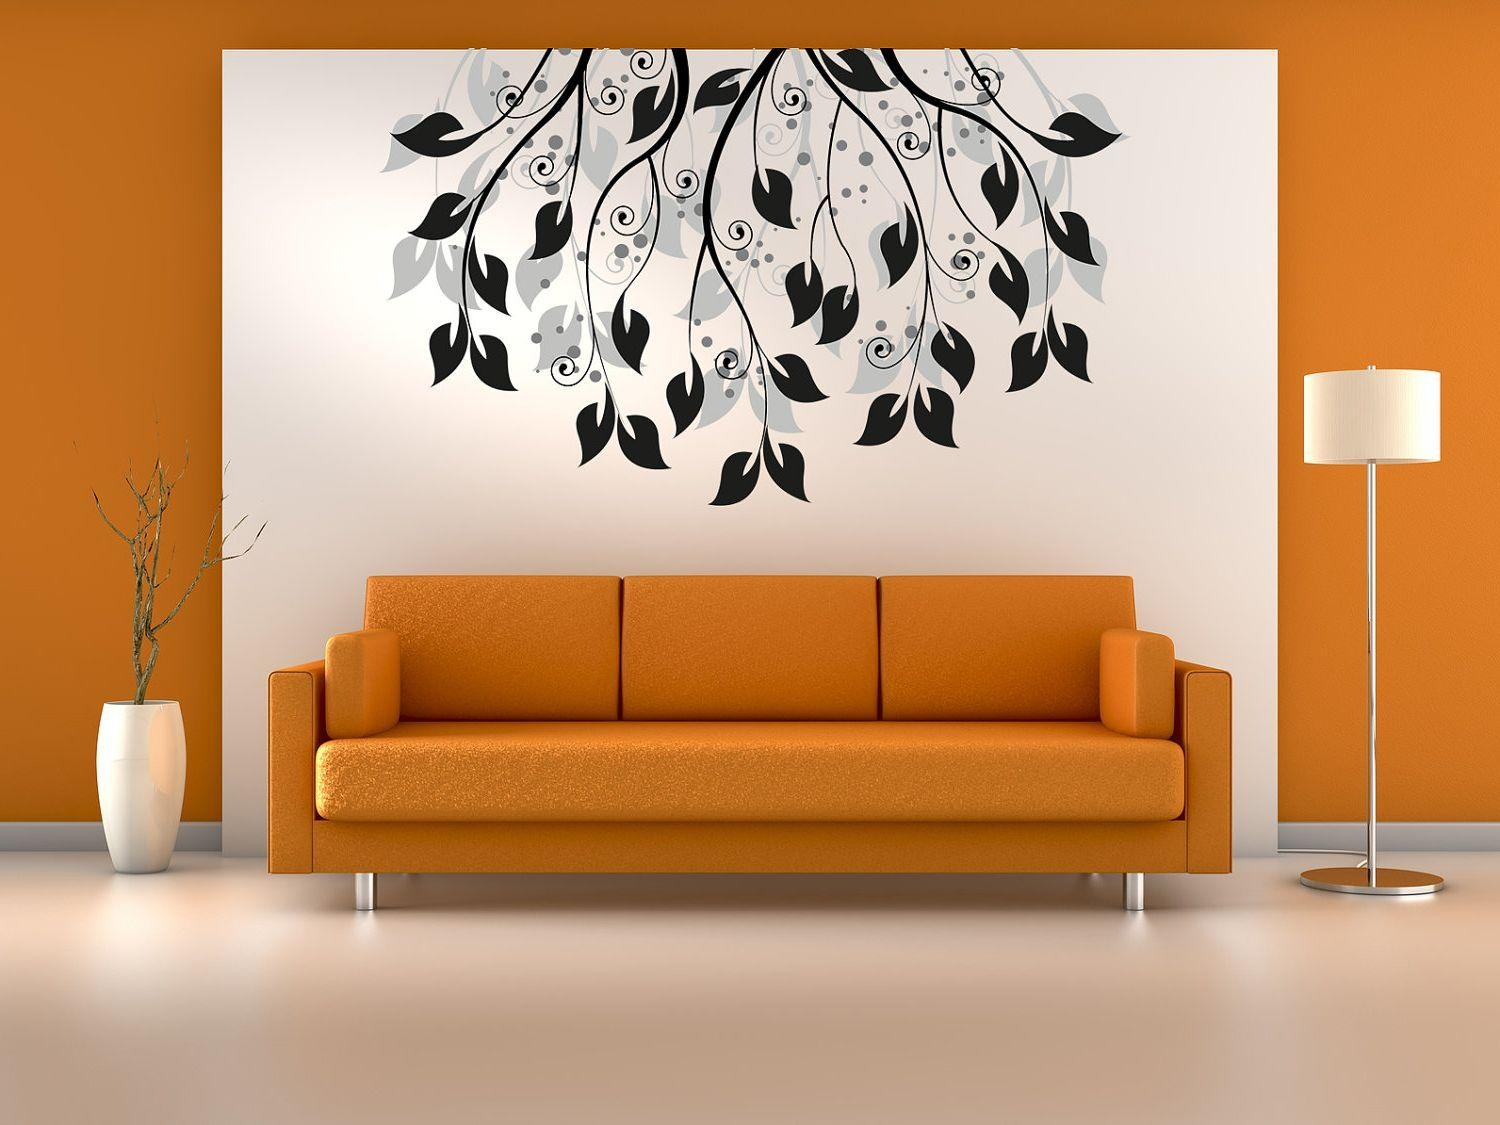 Excellent Living Room Wall Art Decoration 30 With Living Room Wall With Regard To Wall Pictures For Living Room (Image 12 of 20)